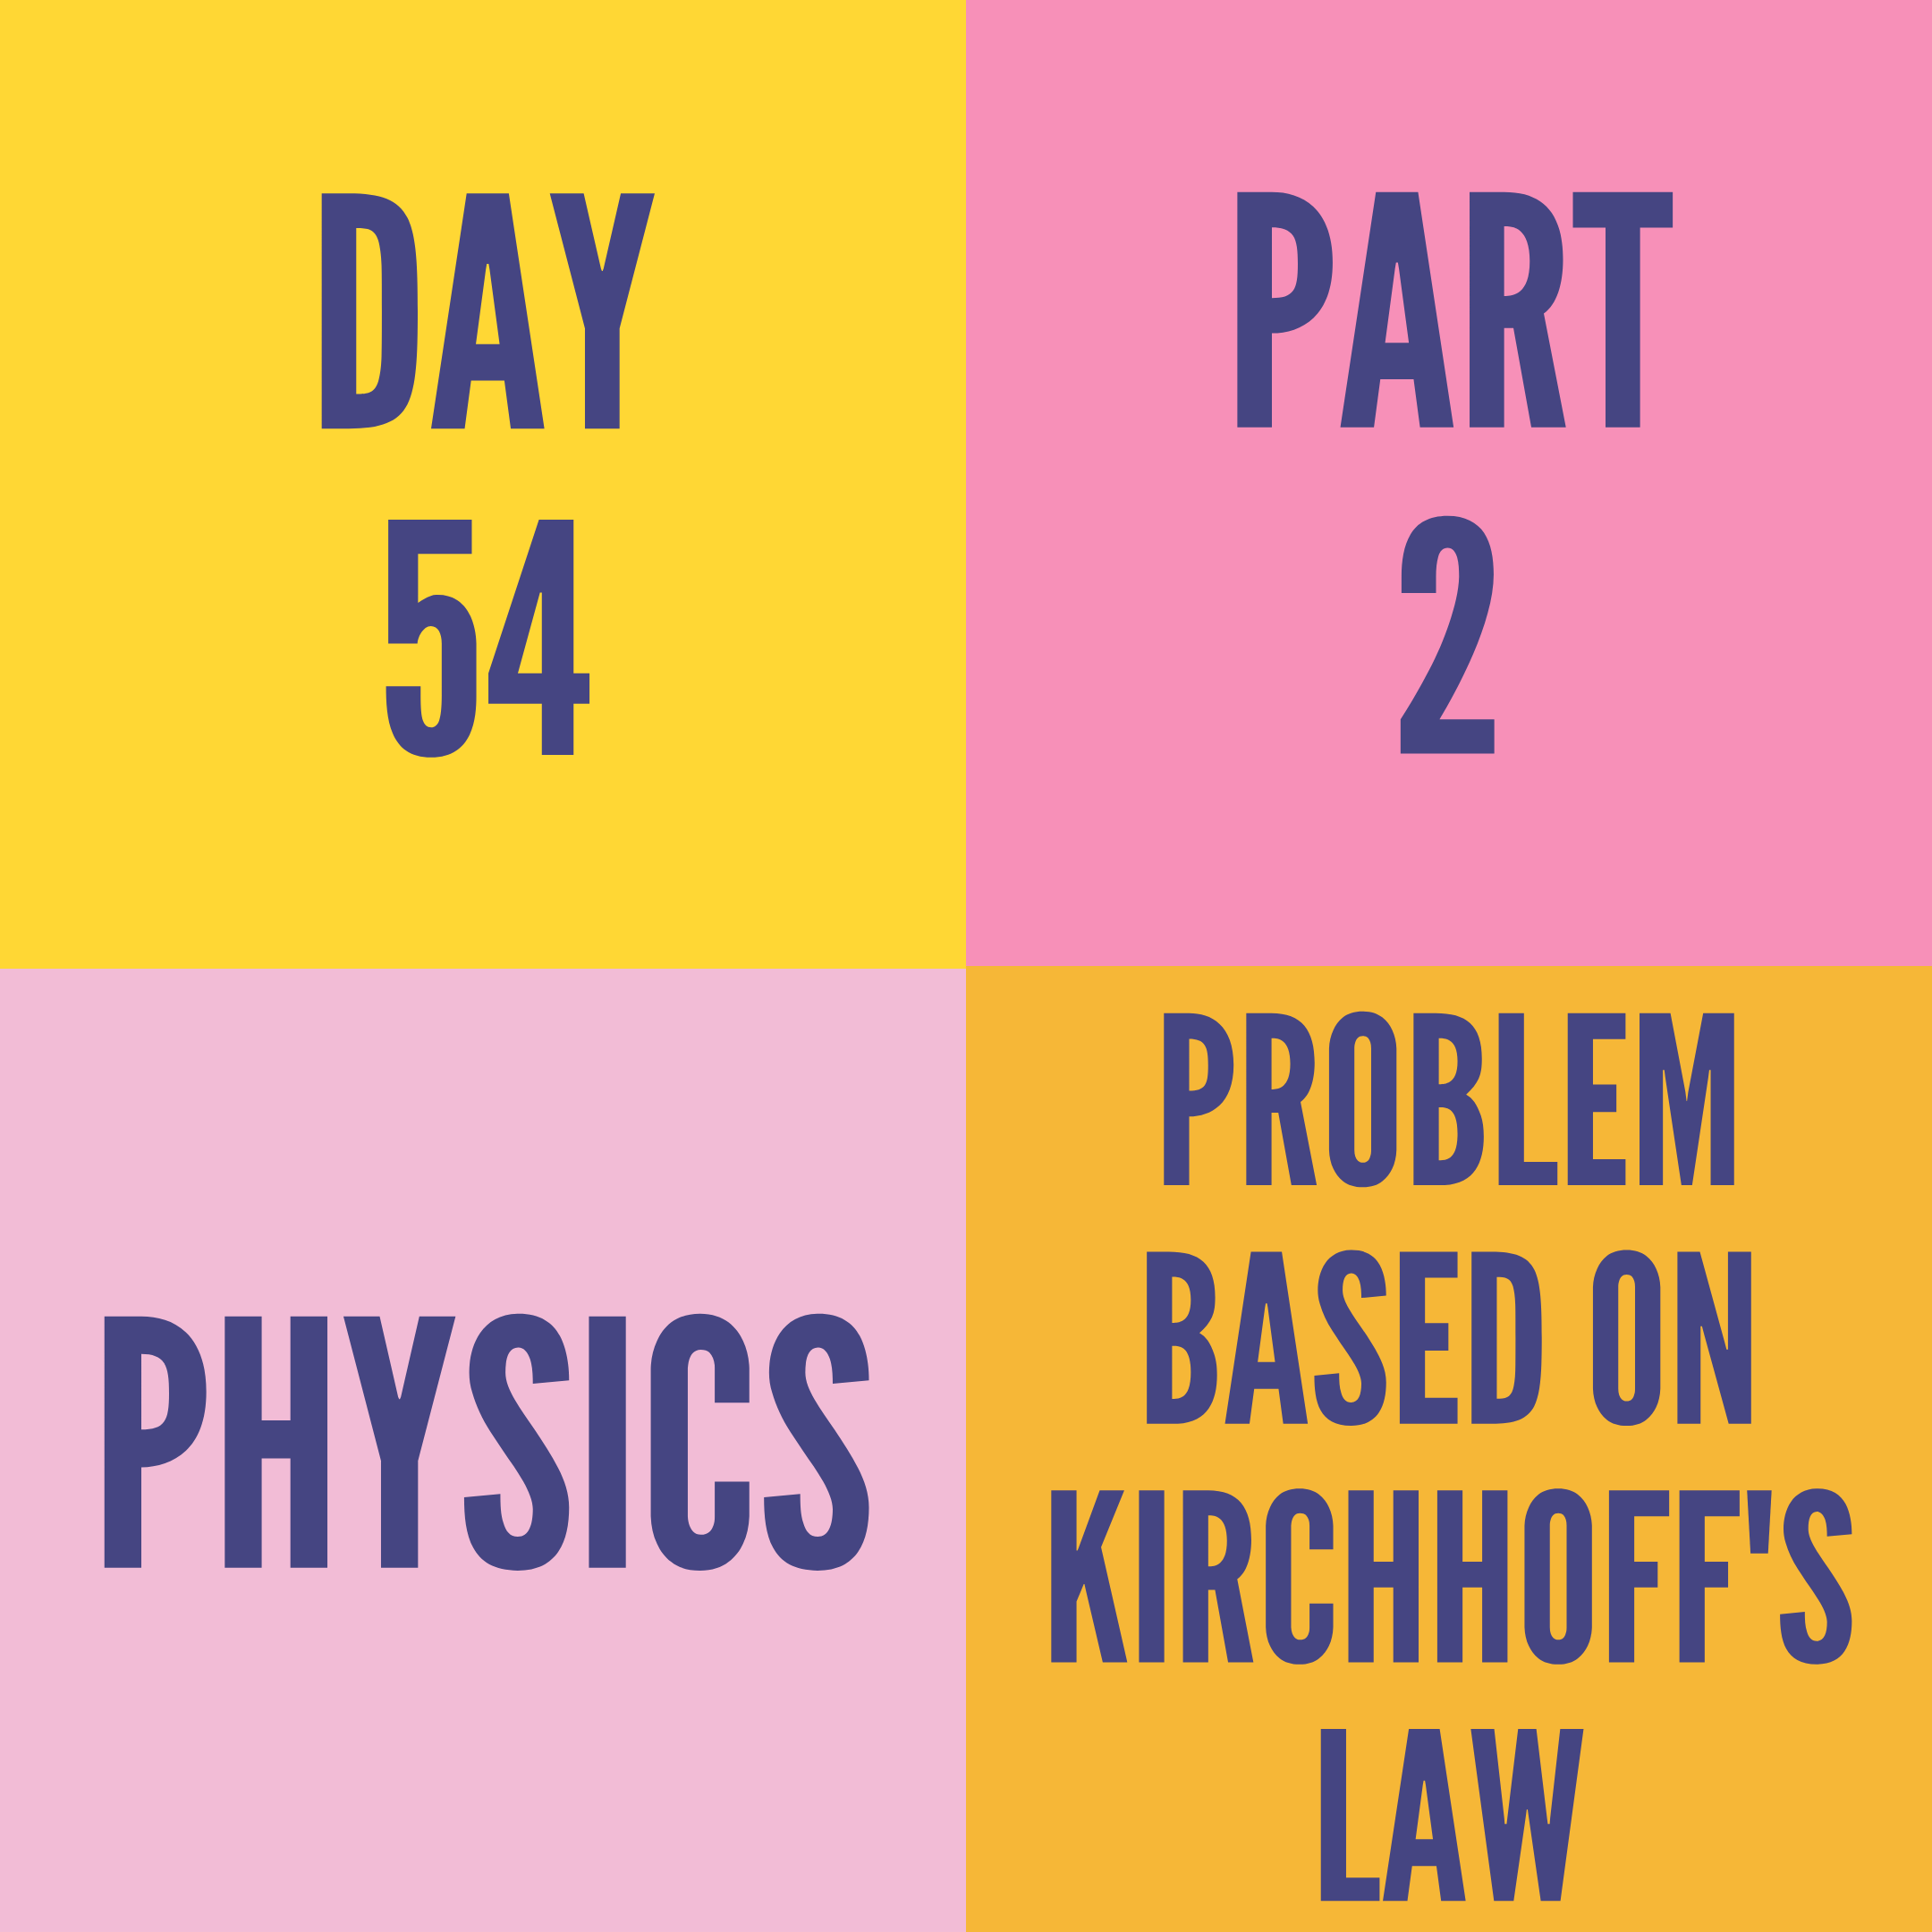 DAY-54 PART-2  PROBLEM BASED ON KIRCHHOFF'S LAW